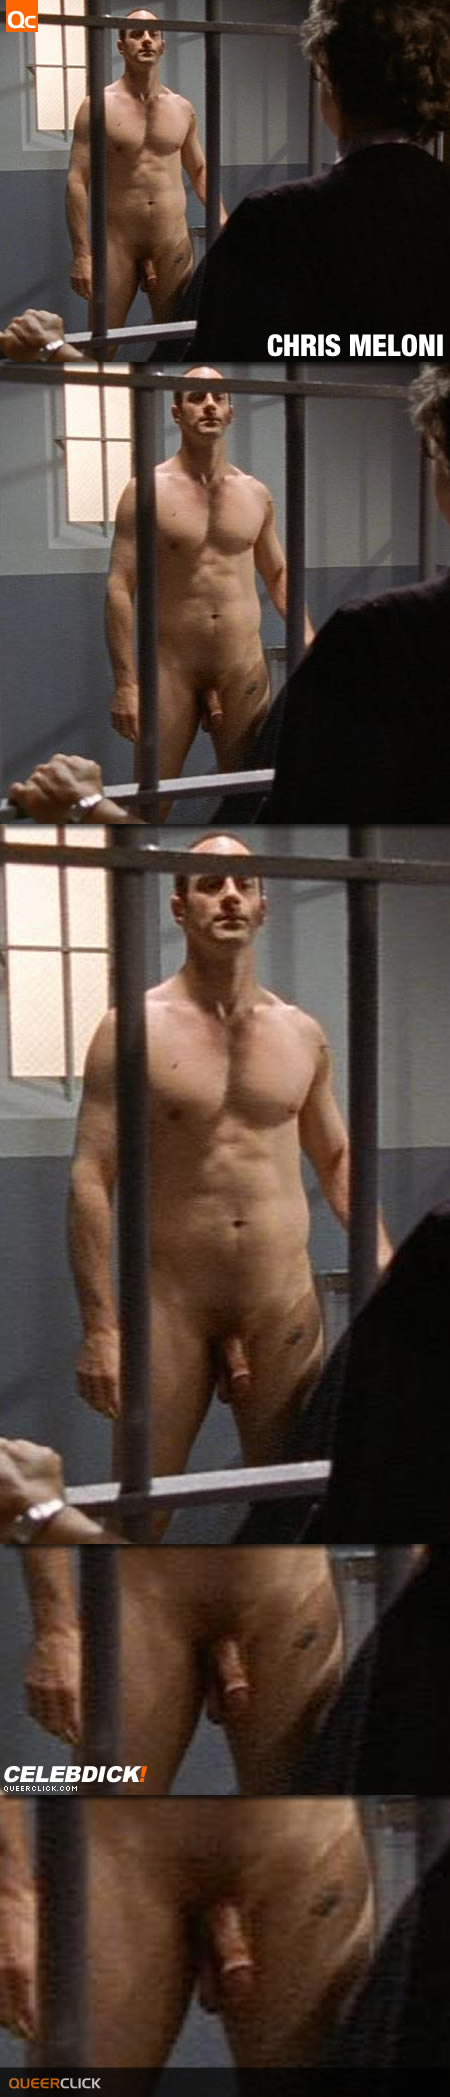 Chris Meloni Frontal Nude